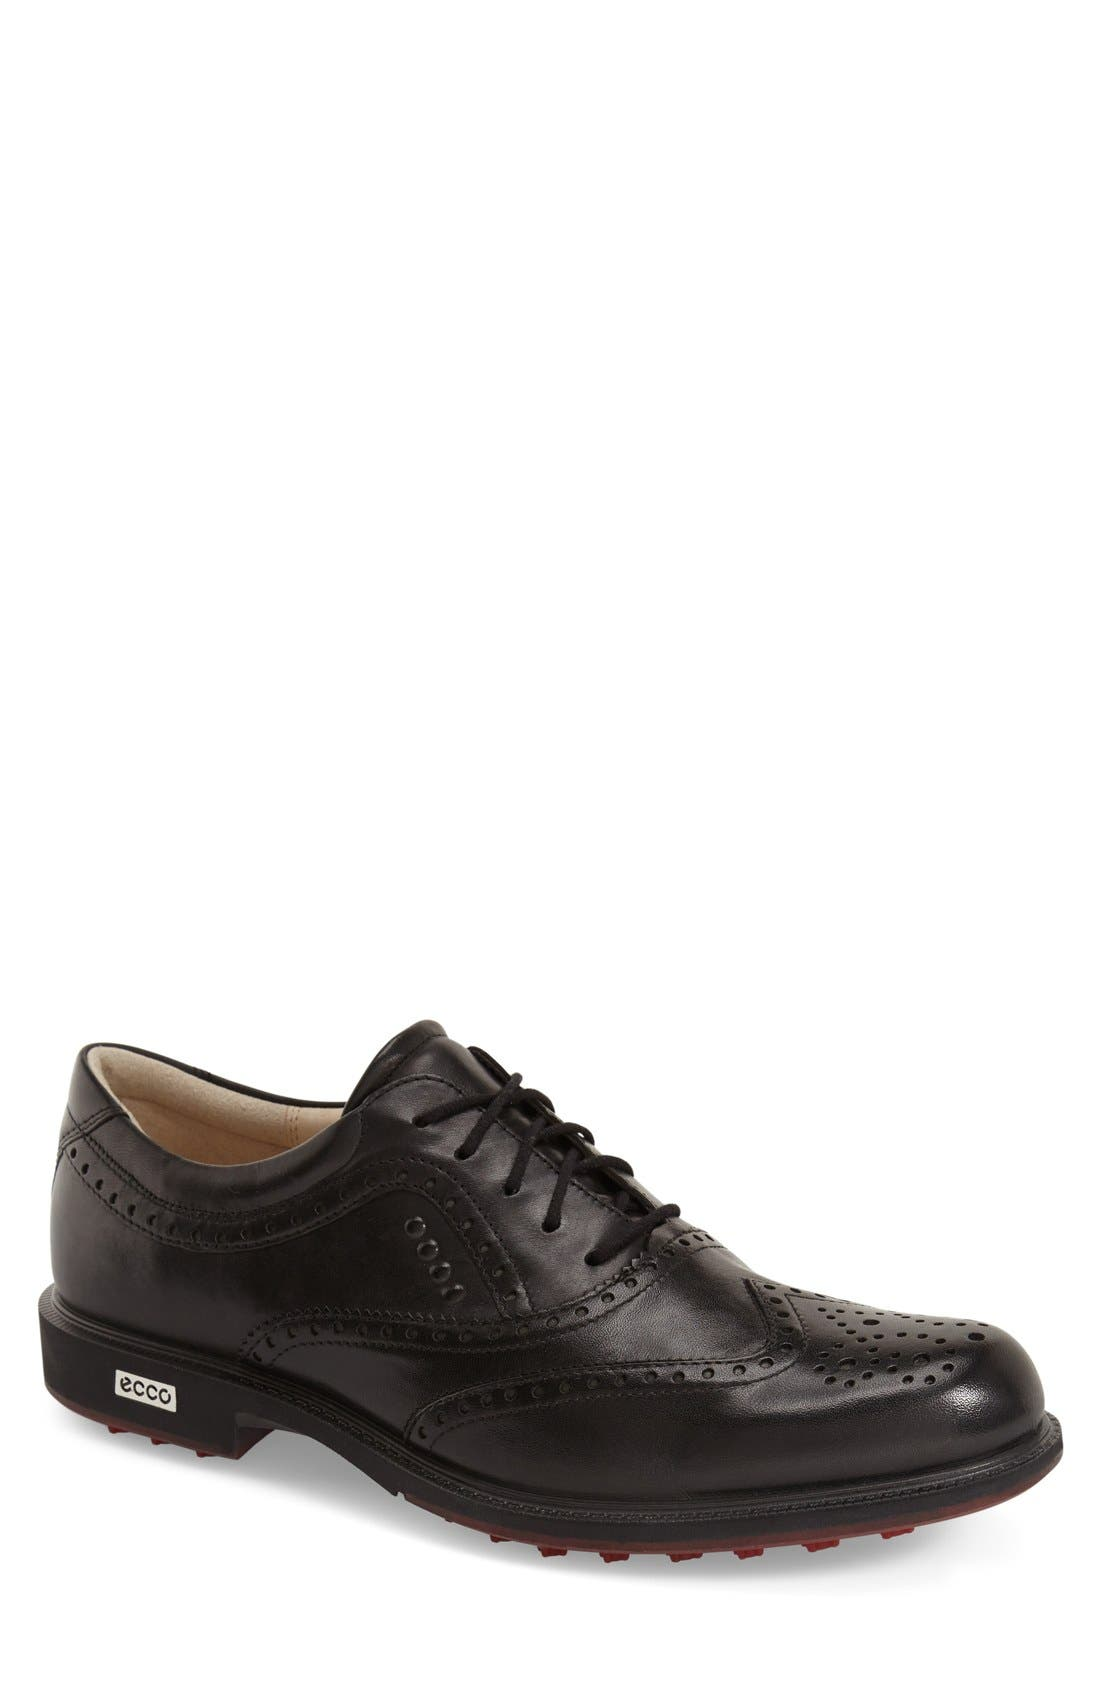 'Tour' Hybrid Wingtip Golf Shoe, Main, color, 011